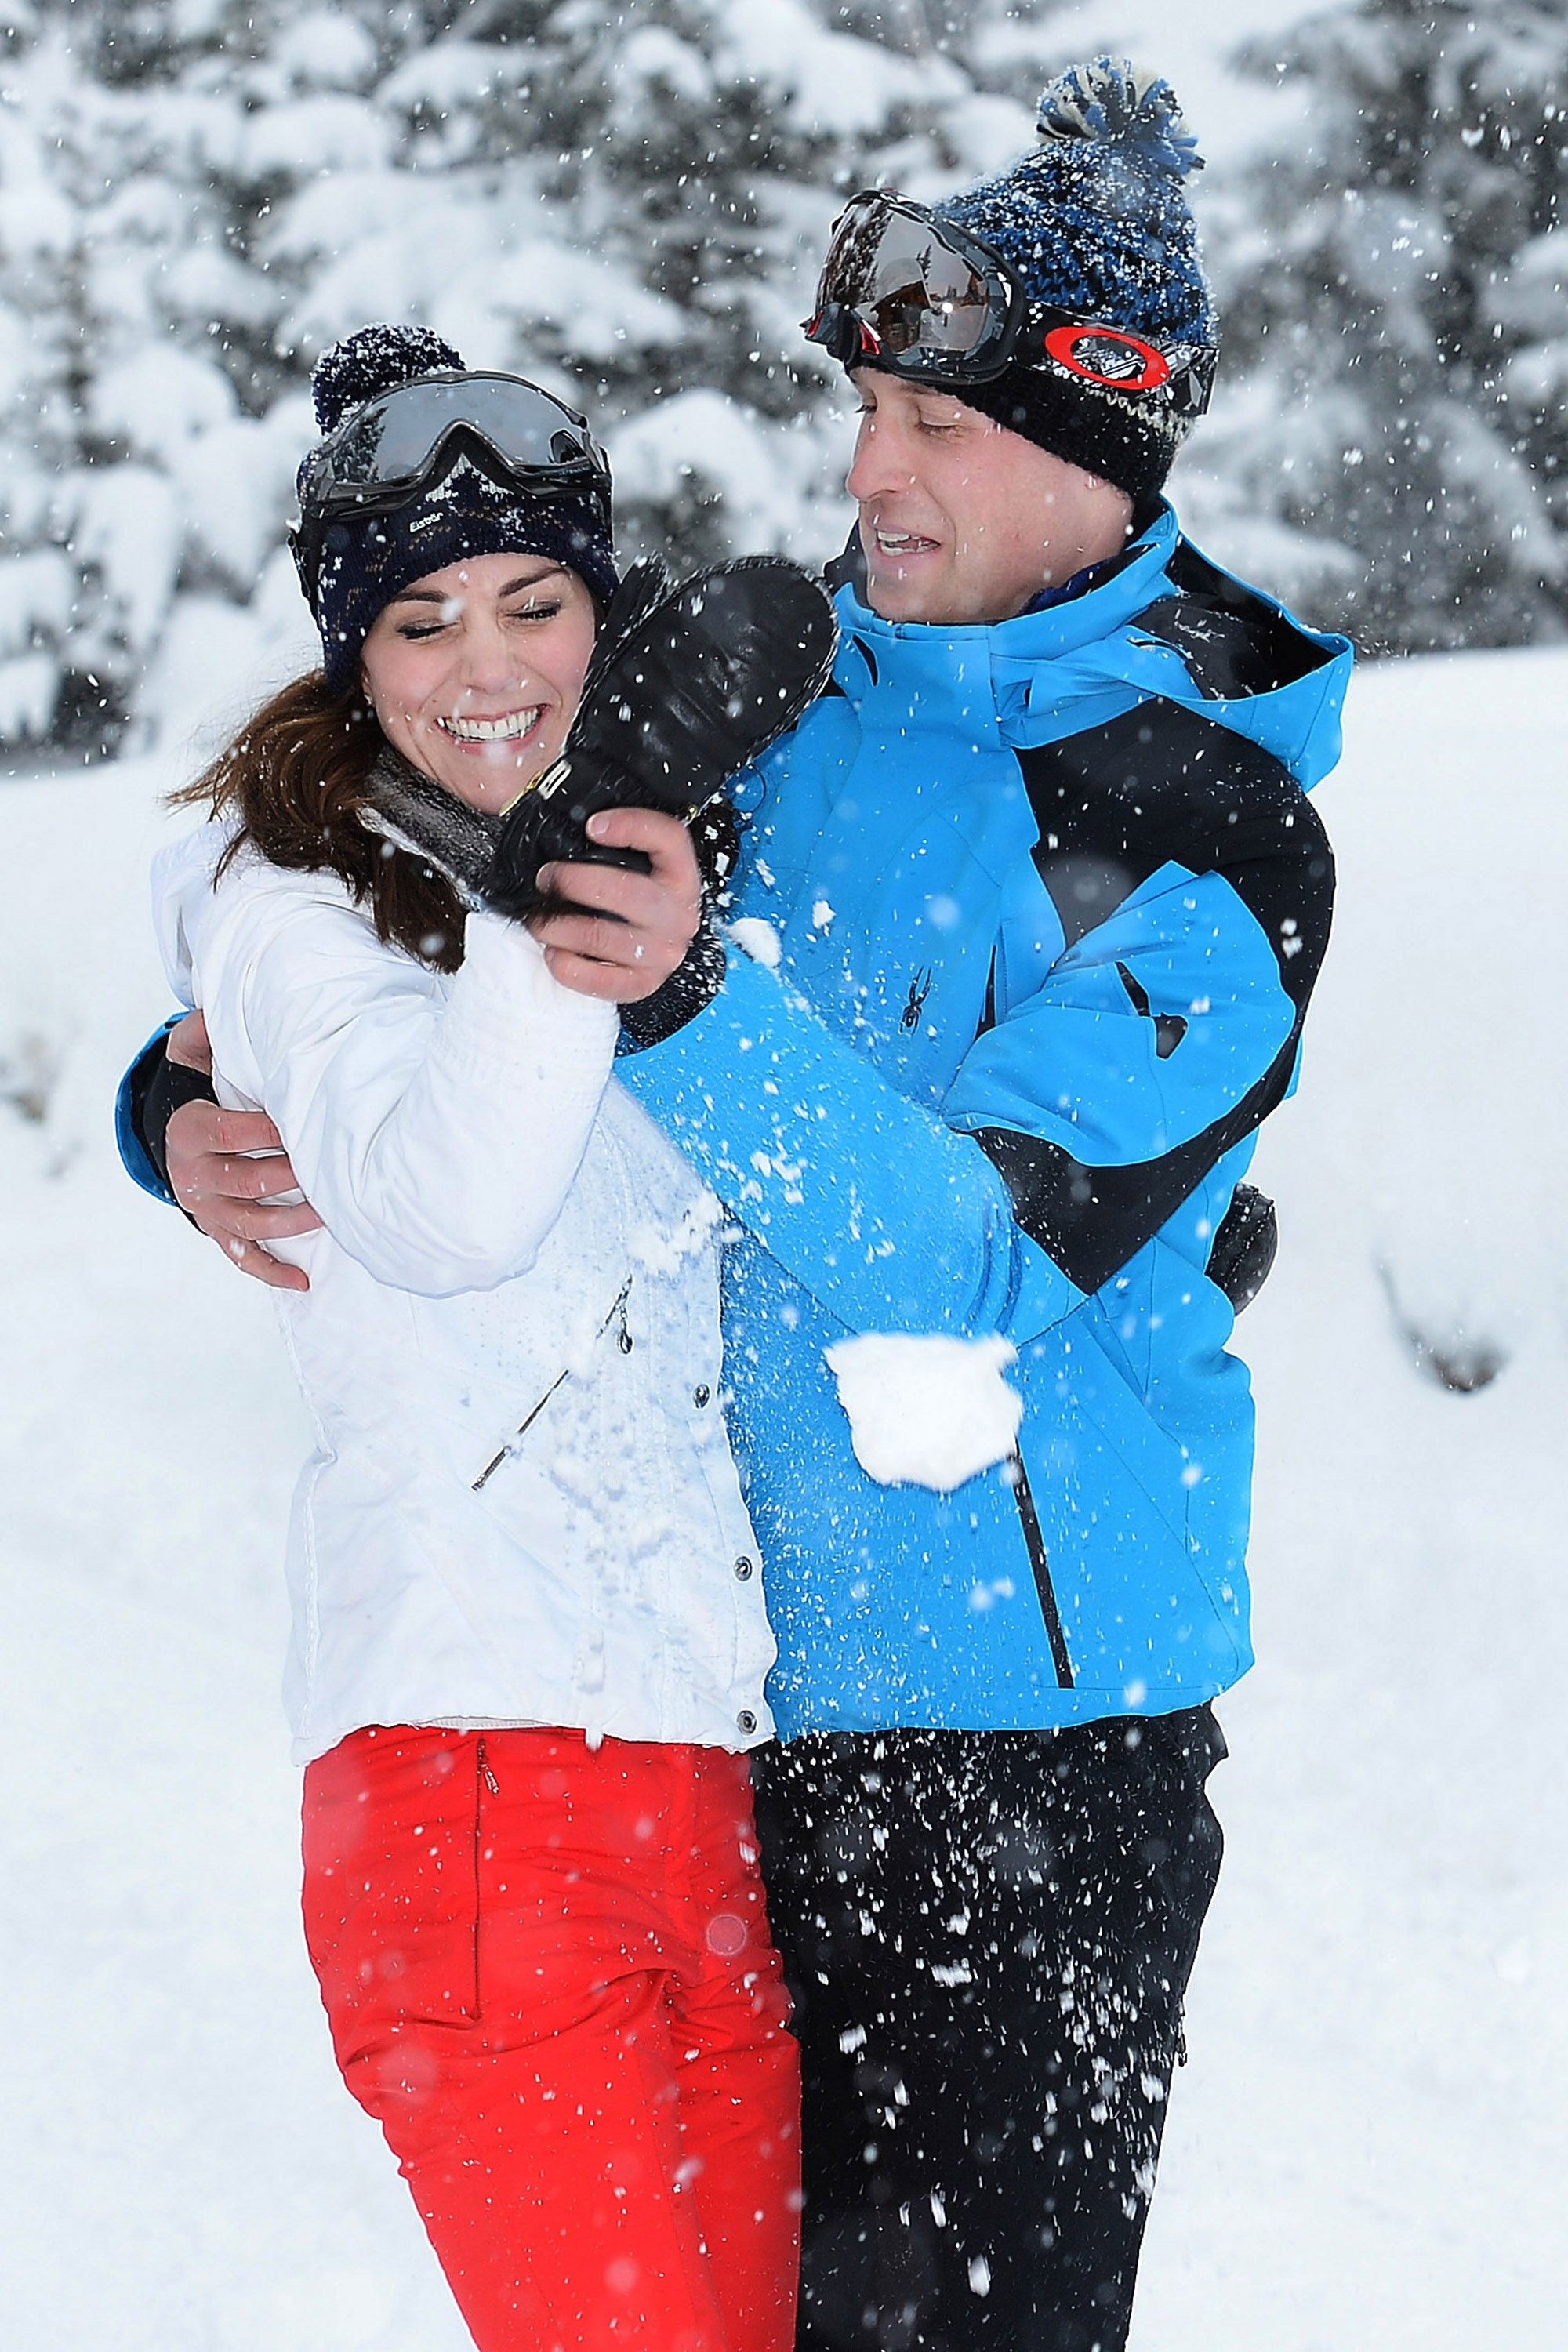 "<p><strong data-redactor-tag=""strong"">March 3</strong>: The Duke and Duchess of Cambridge <a href=""http://www.harpersbazaar.com/celebrity/latest/news/a14525/kate-middleton-prince-william-french-alp-pics/"" target=""_blank"" data-tracking-id=""recirc-text-link"" data-external=""true"">release adorable photos</a> from their first vacation as a family of four.</p>"